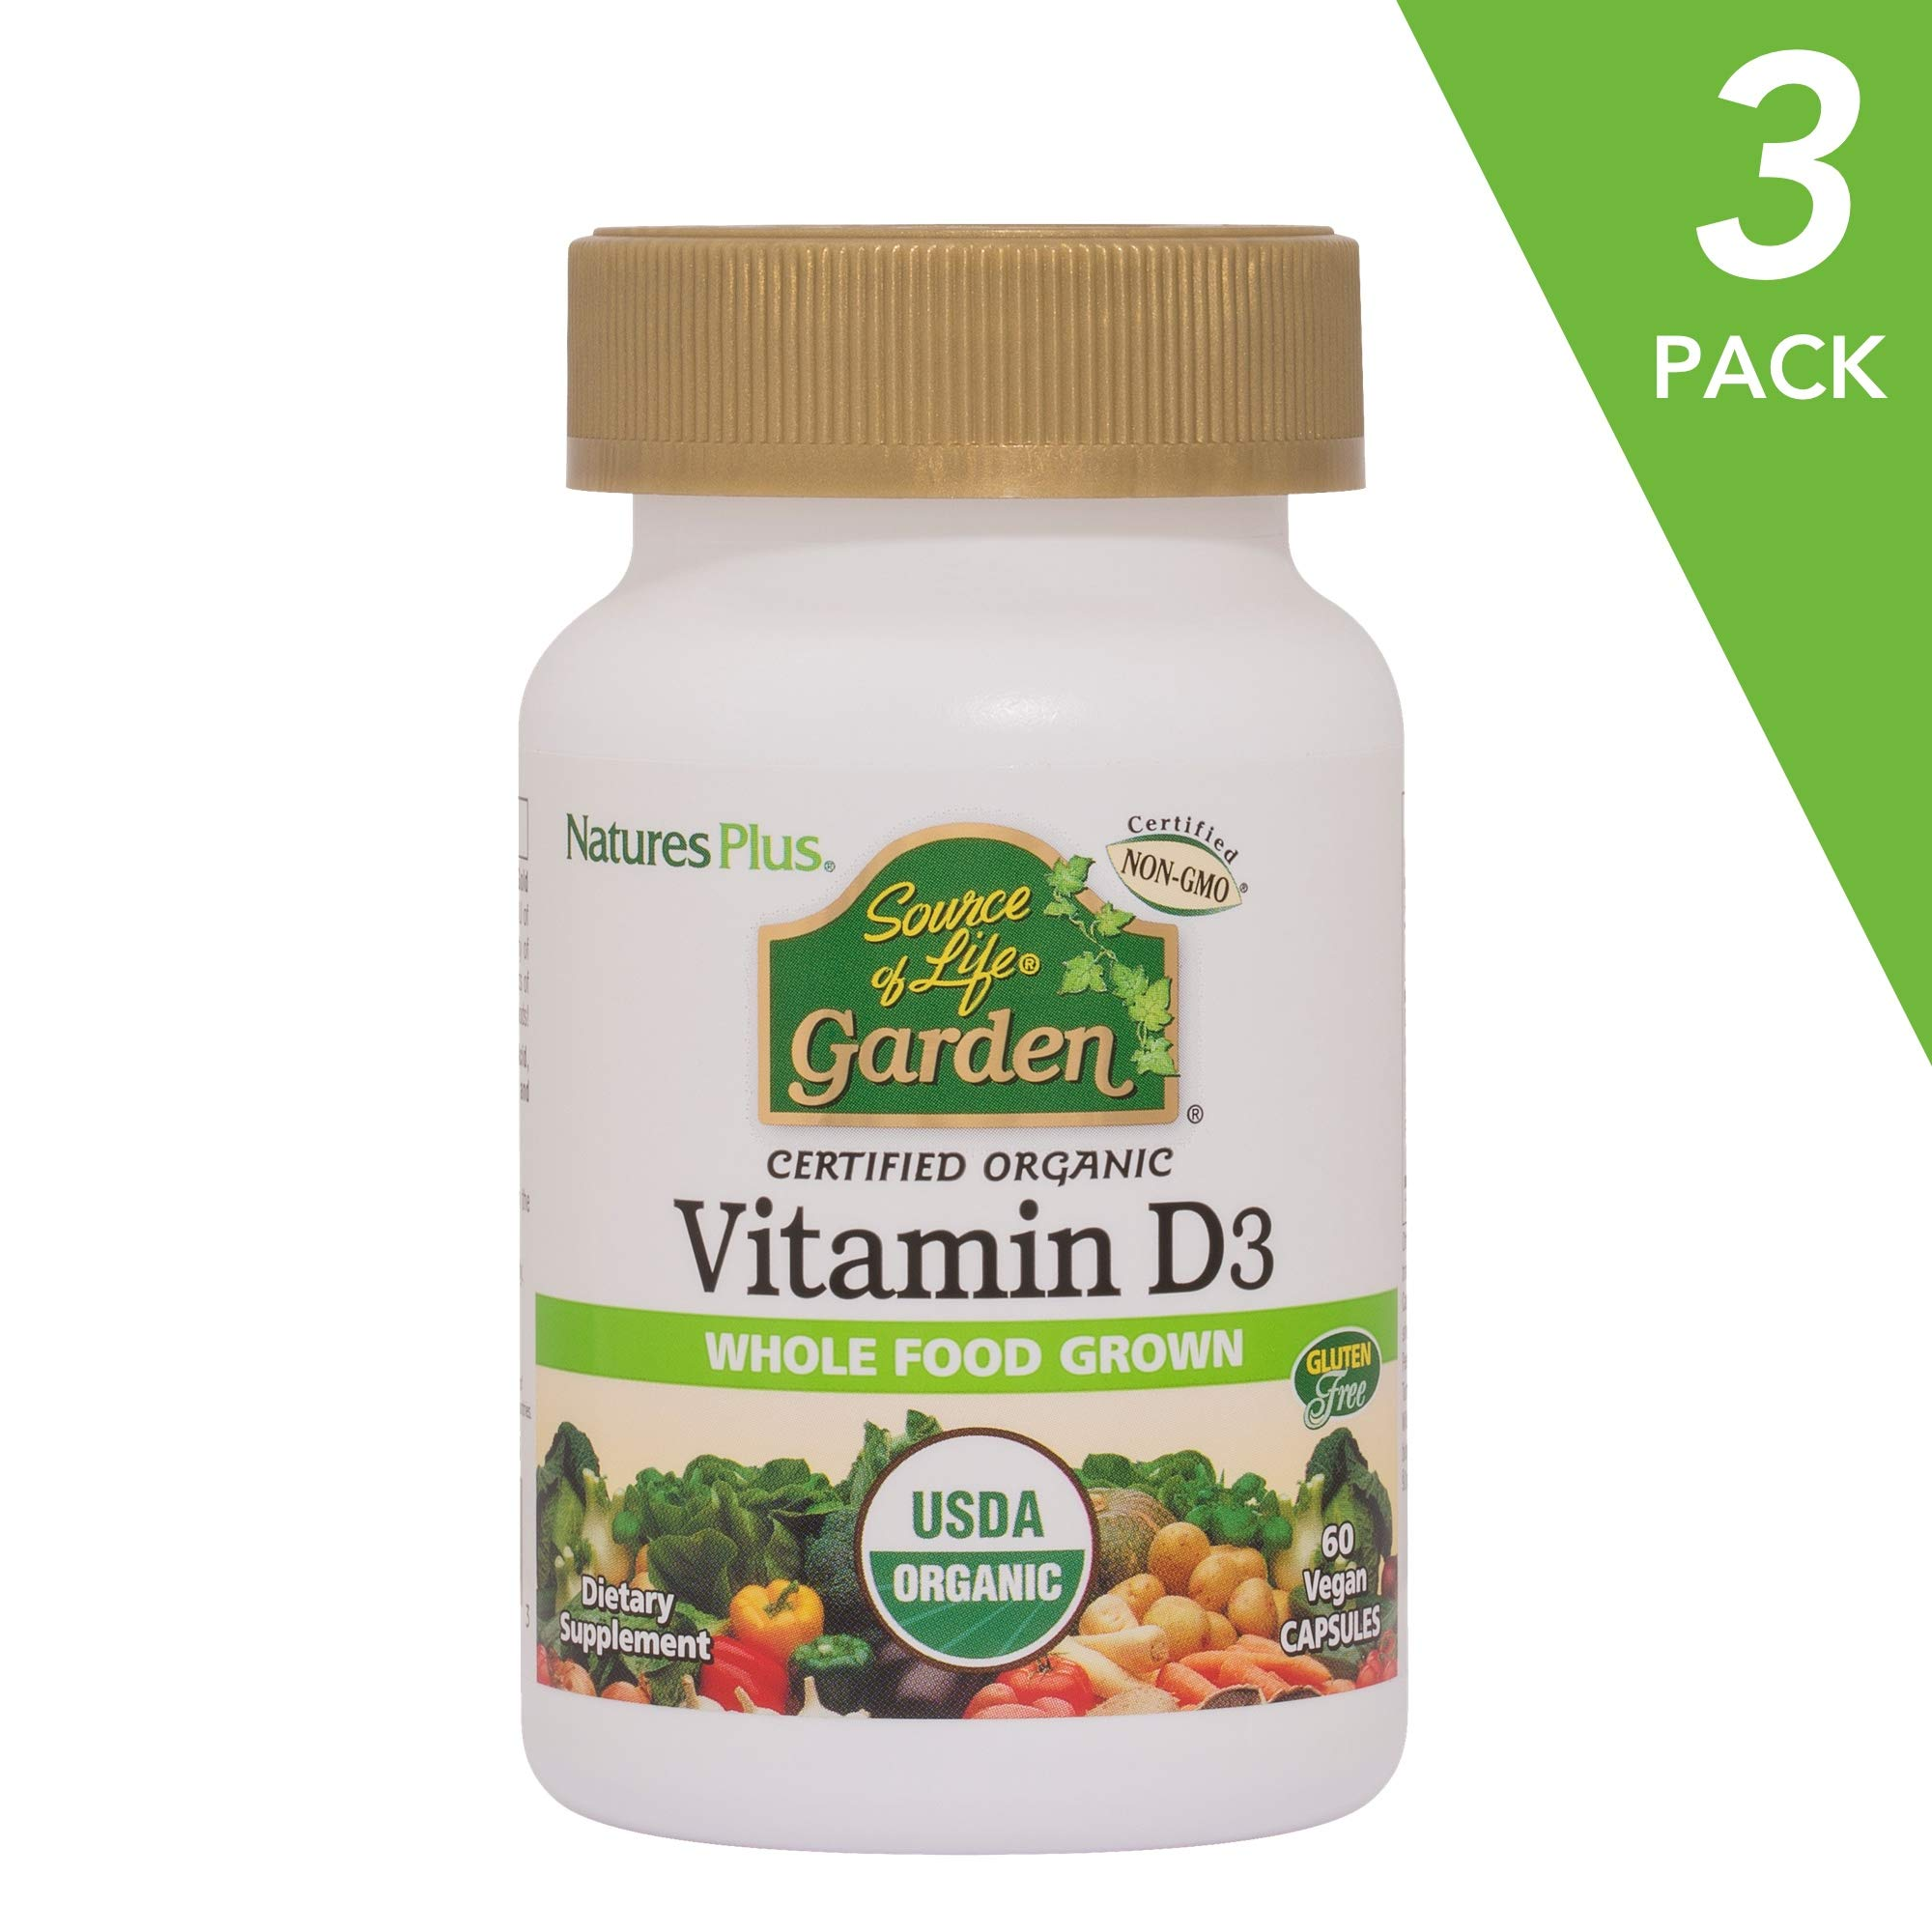 NaturesPlus Source of Life Garden Certified Organic Vitamin D3 (3 Pack) - Cholecalciferol 5000 iu, 60 Vegan Capsules - Whole Food Plant-Based Supplement - Vegetarian, Gluten-Free - 90 Total Servings